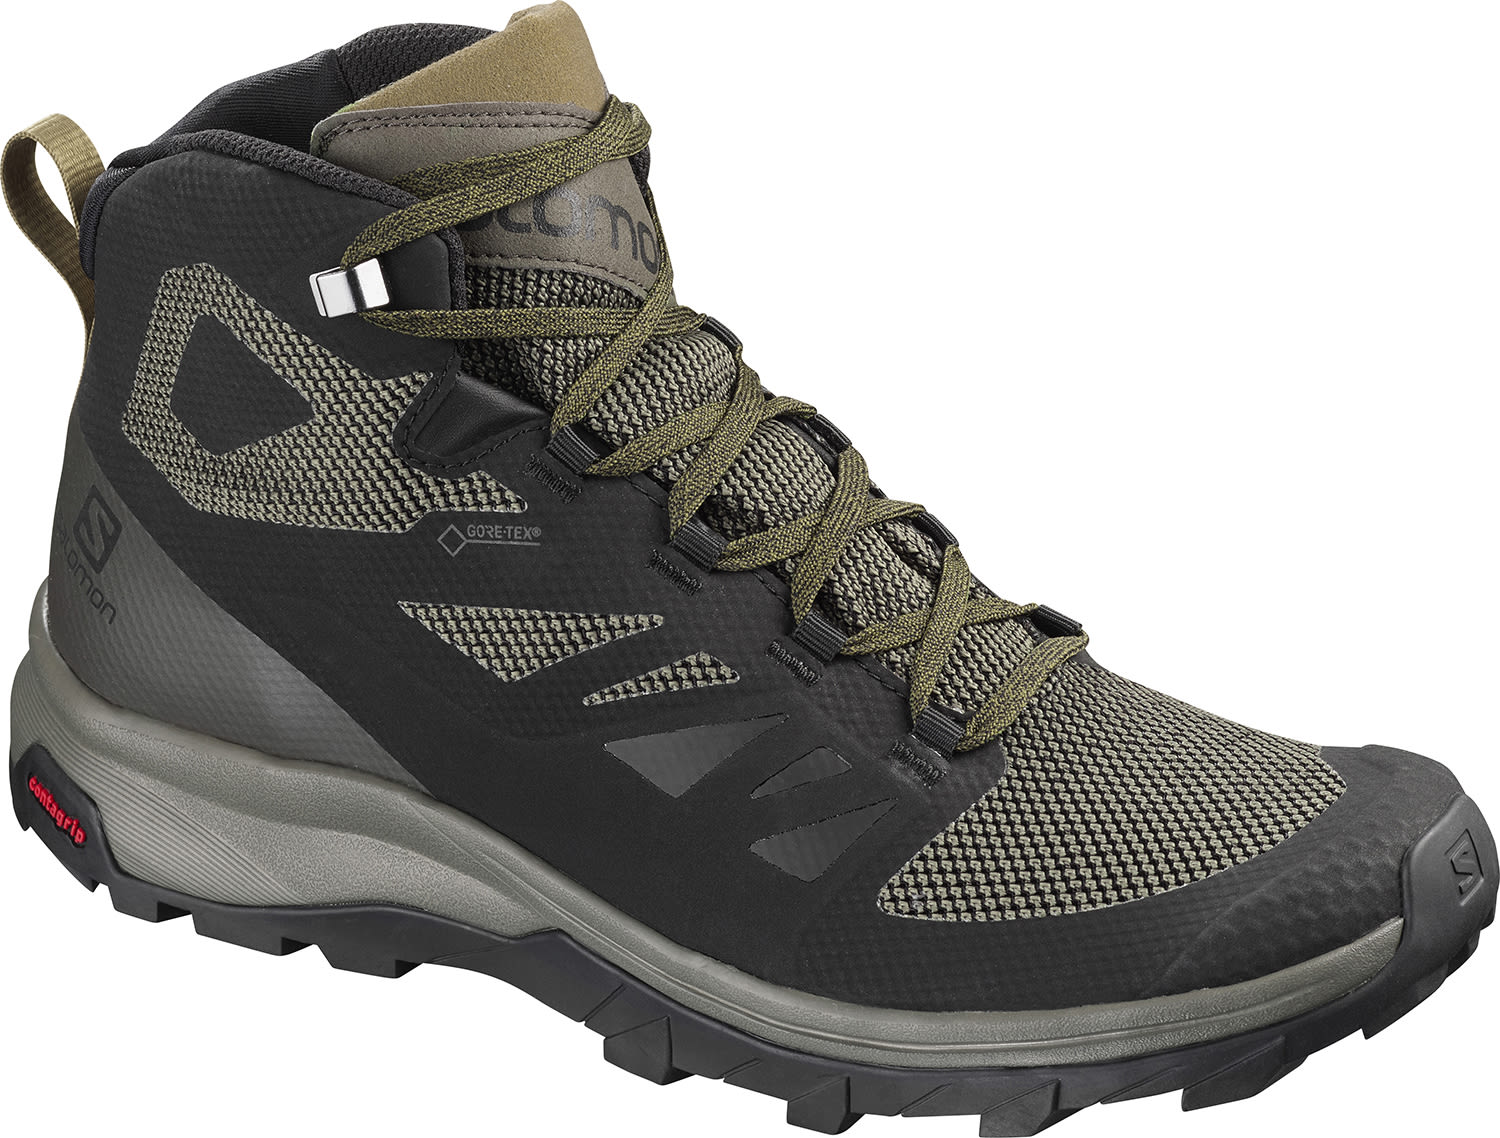 Salomon Outline Mid Gtx Hiking Boots 2019